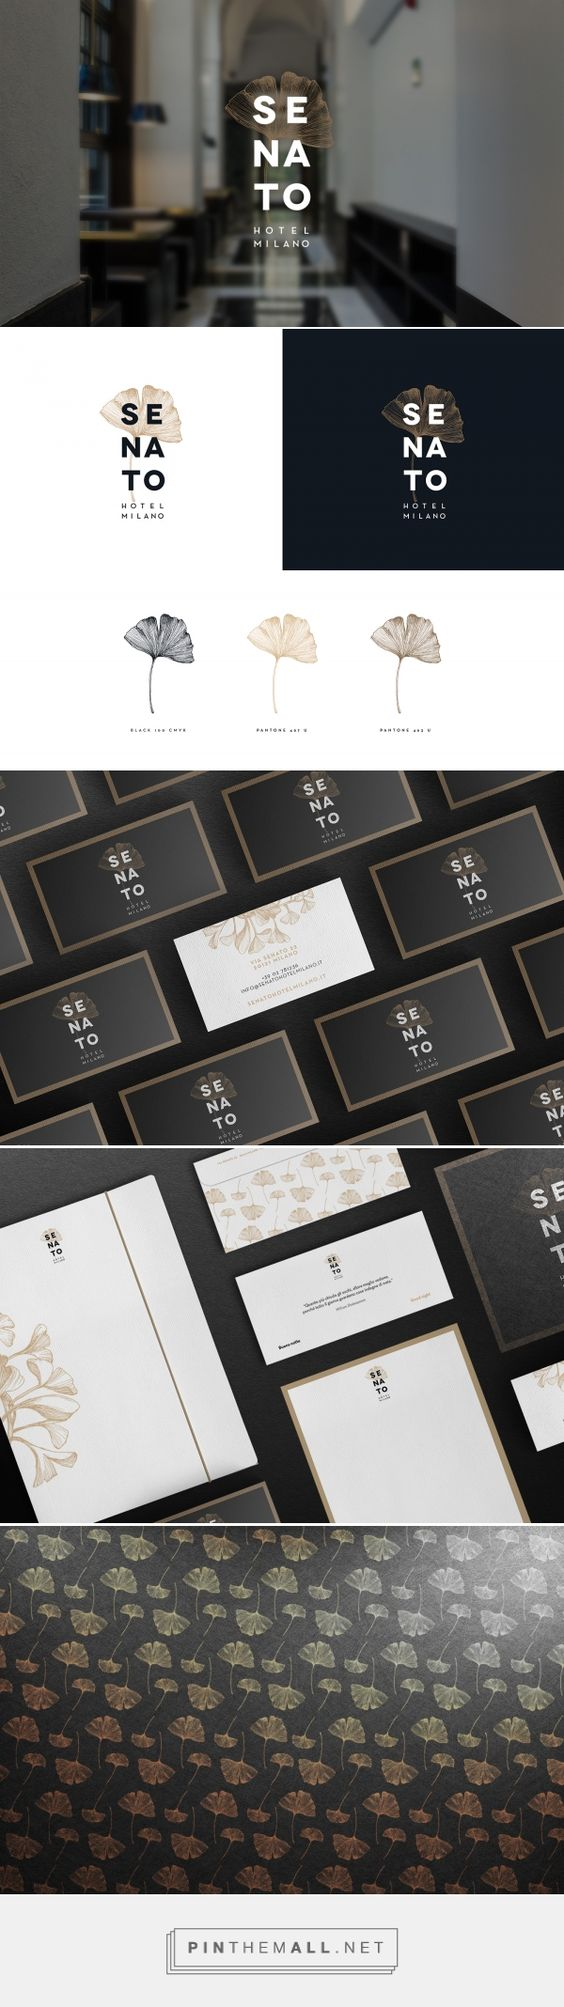 Senato Hotel Milano on Behance... - a grouped images picture - Pin Them All